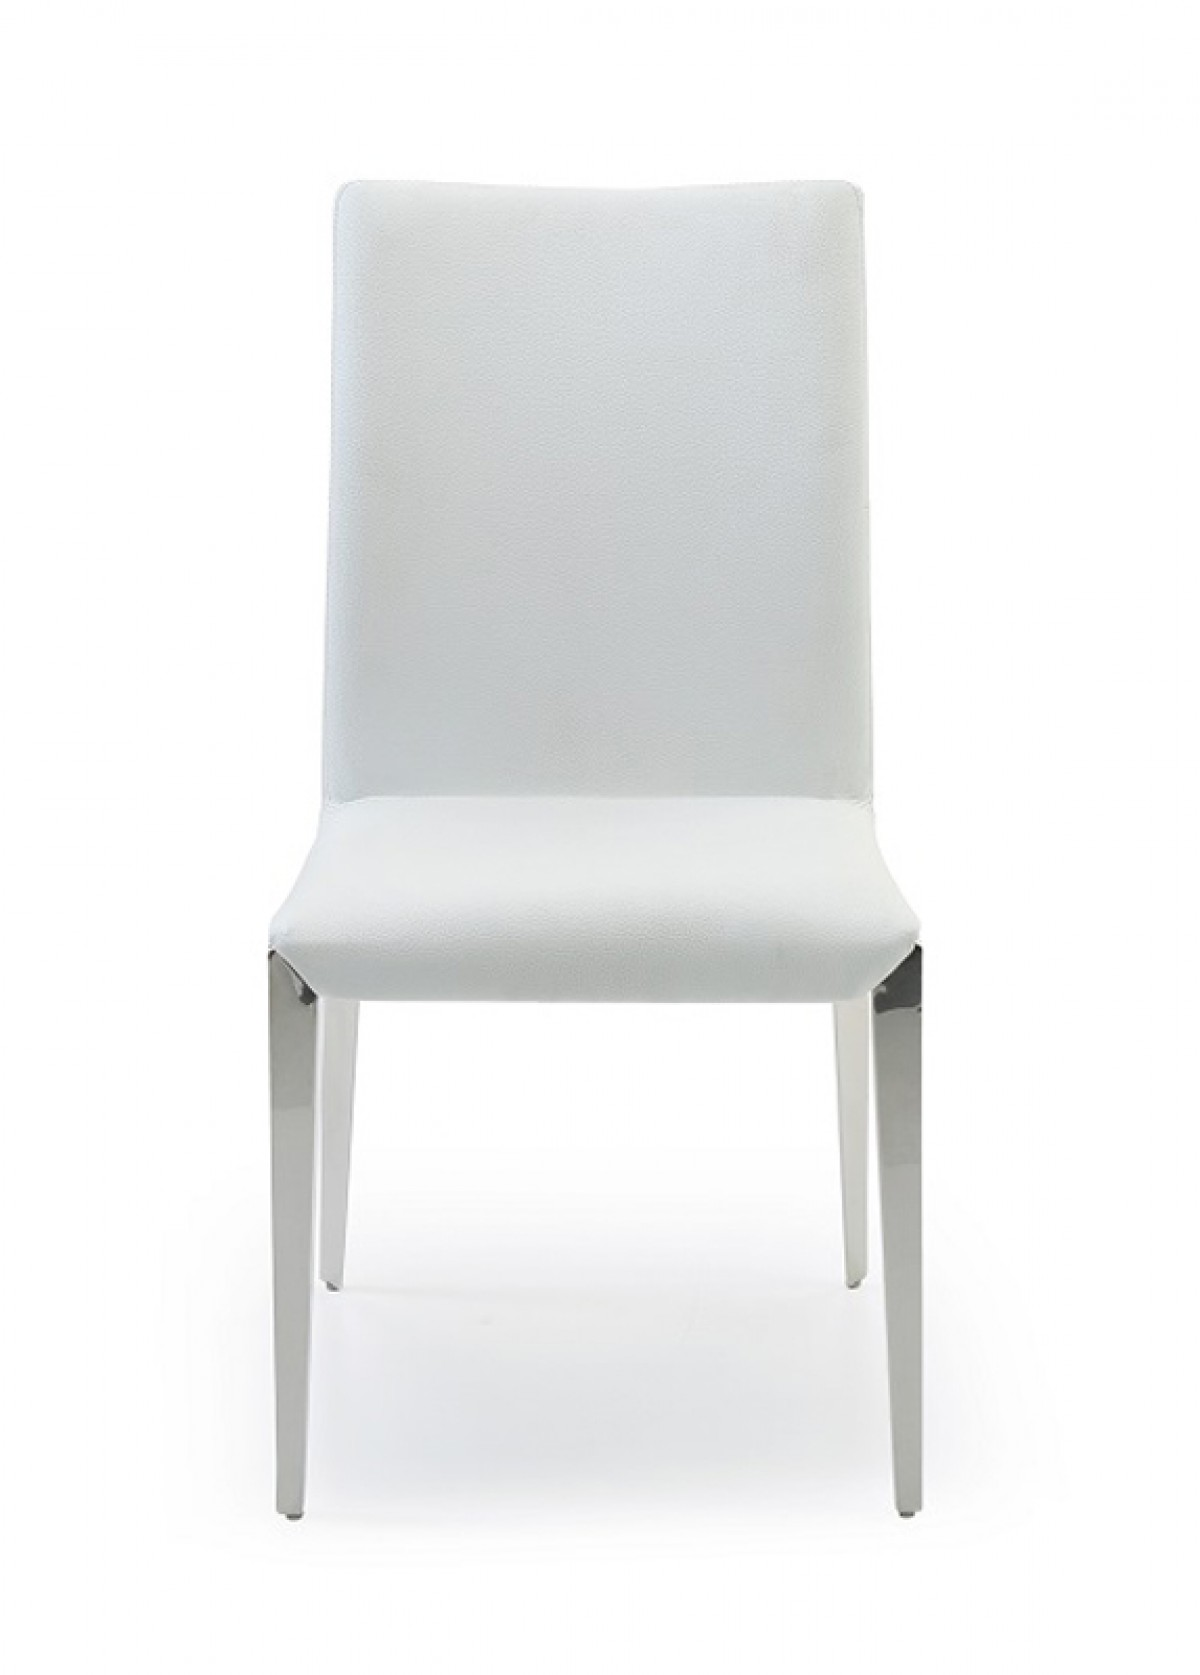 Taryn - Modern White Dining Chair (Set of 2)